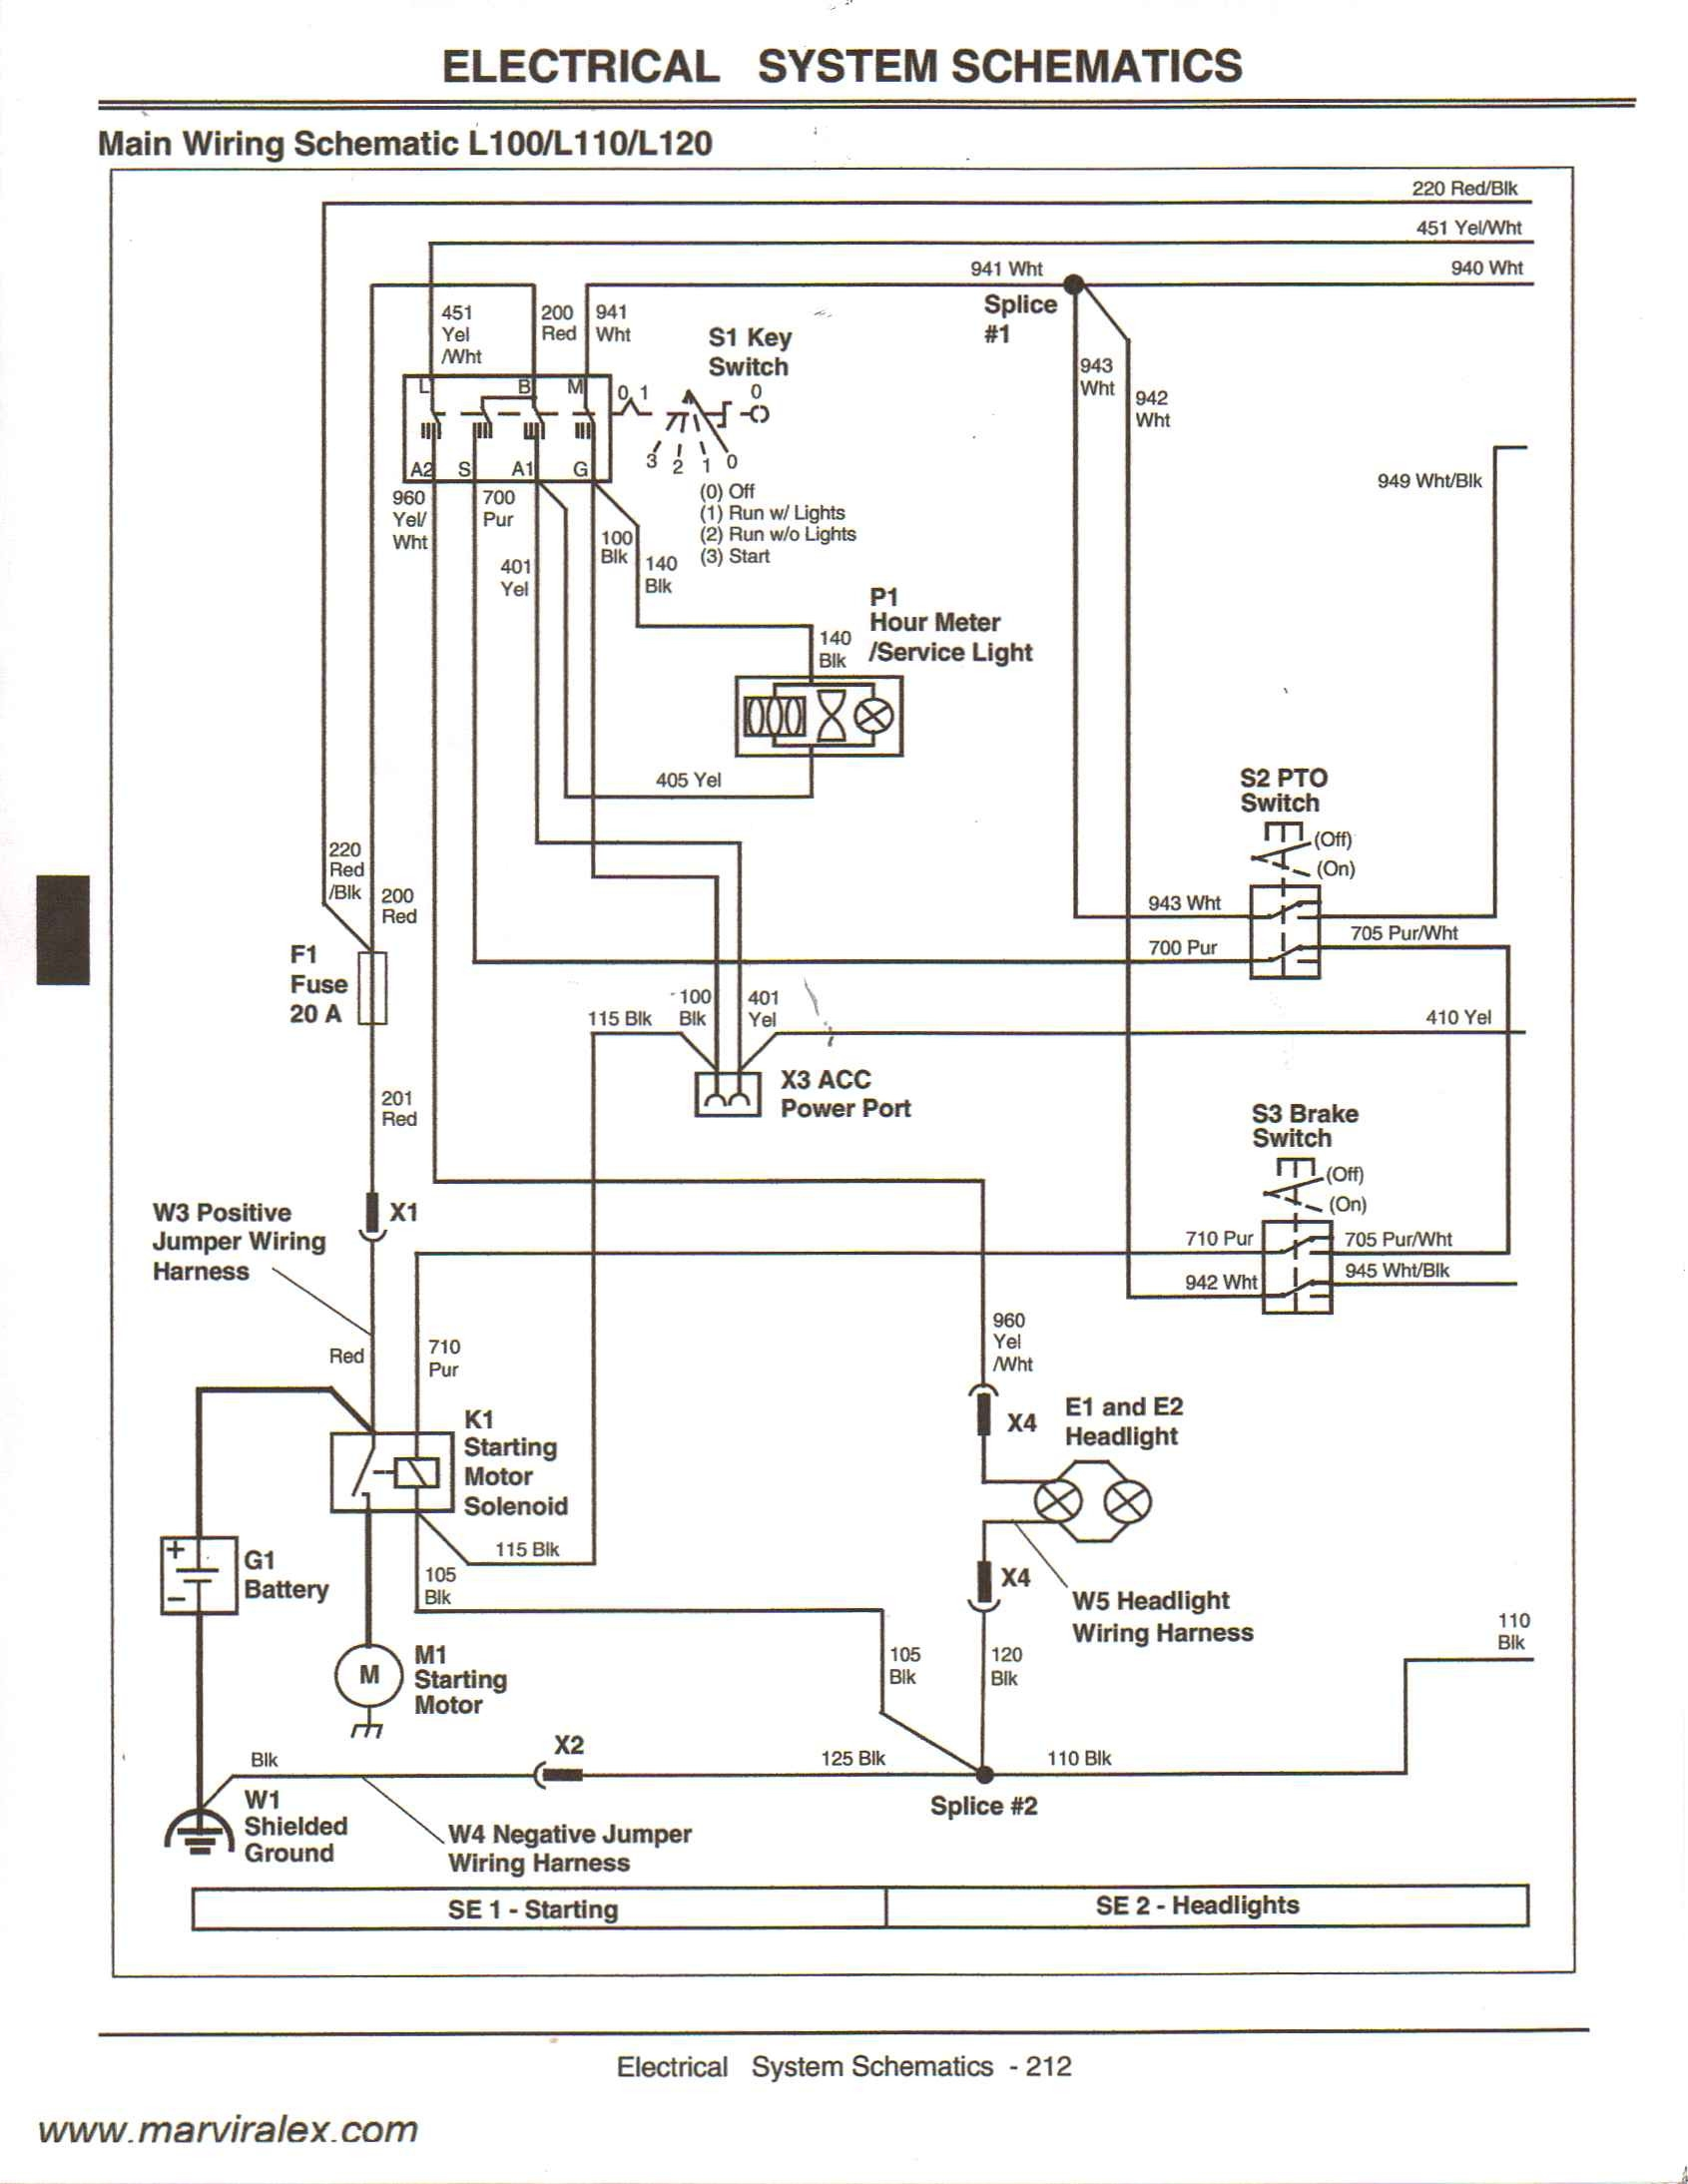 pto switch wiring diagram Collection-Wiring Diagram for John Deere Lt155 Best Pto Switch Wiring Diagram Fresh Charming Chelsea Pto Wiring 11-r